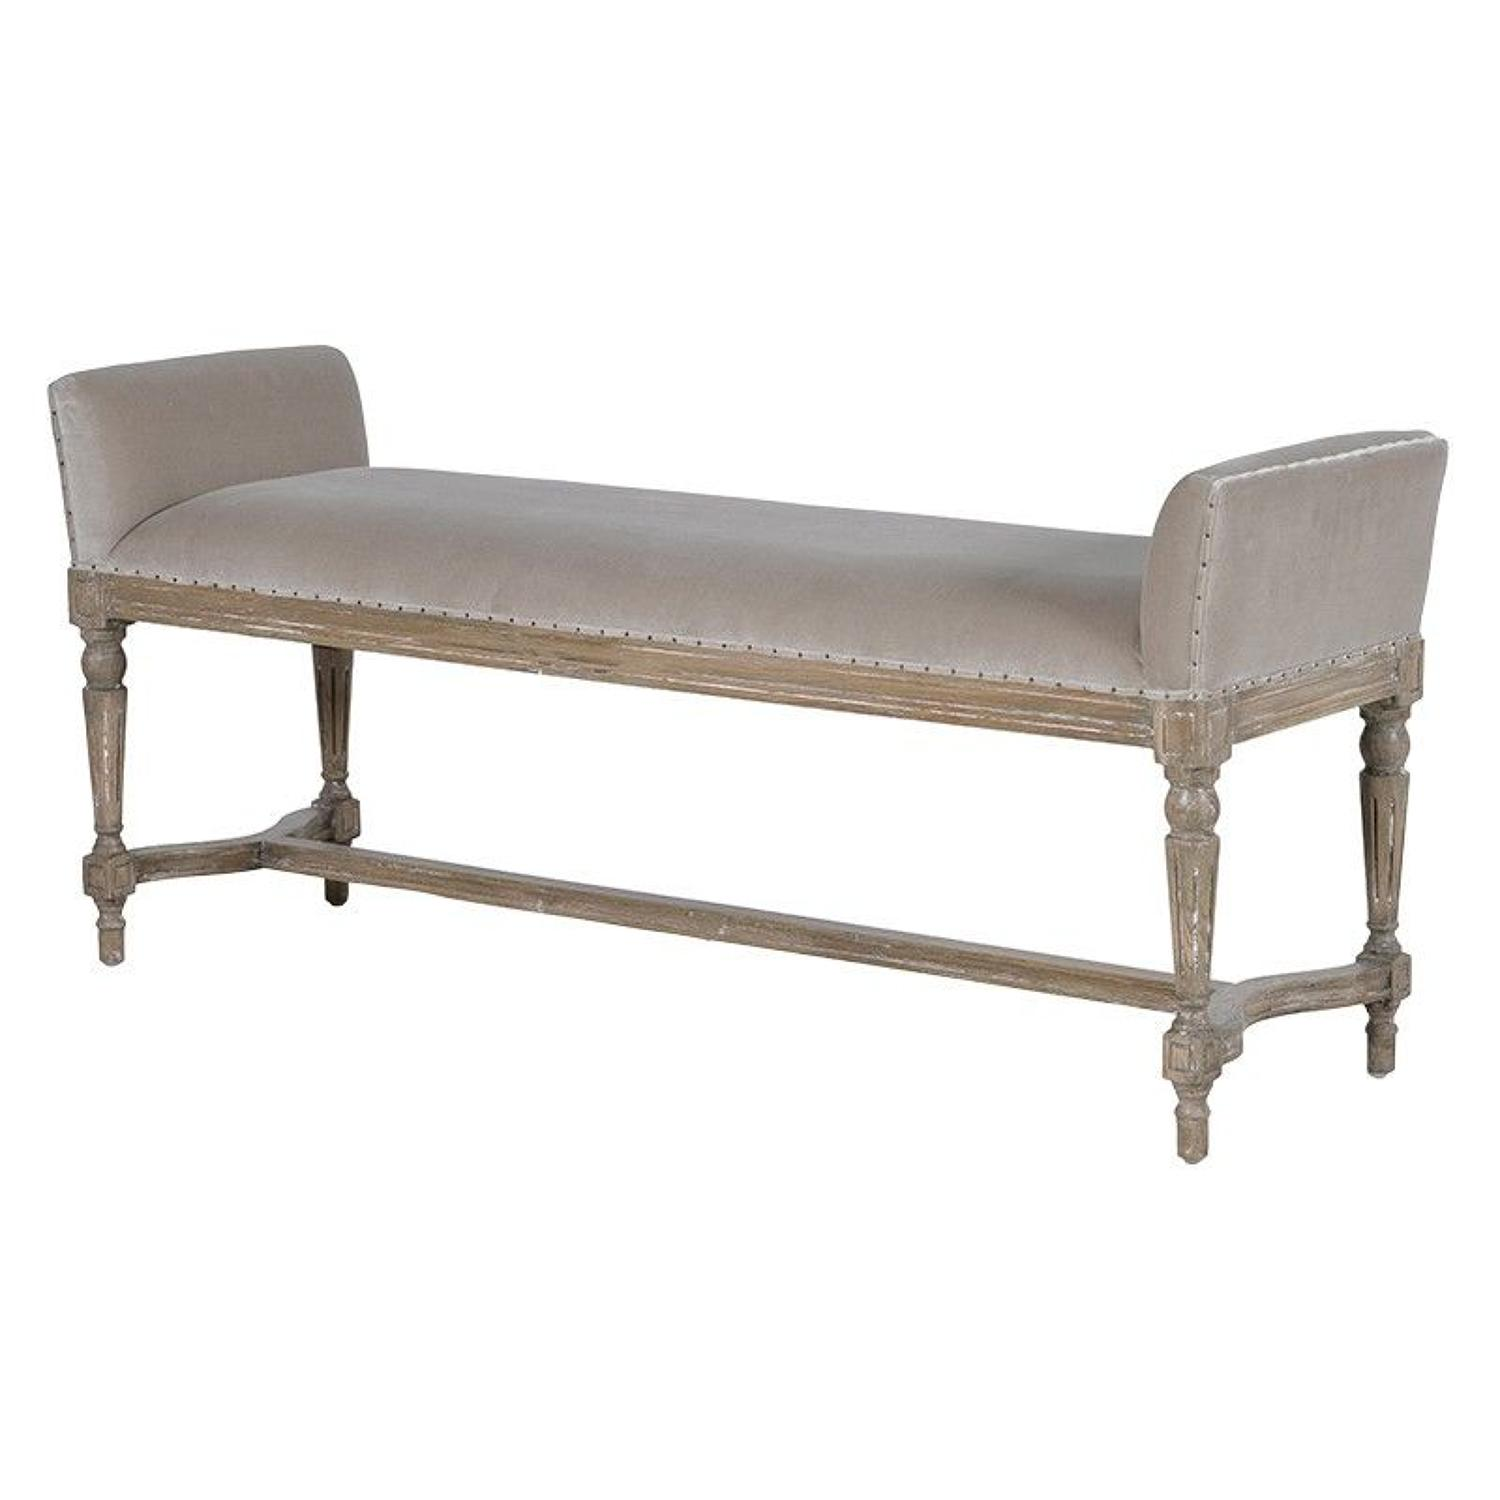 Distressed, velvet day bench with feature stud detail